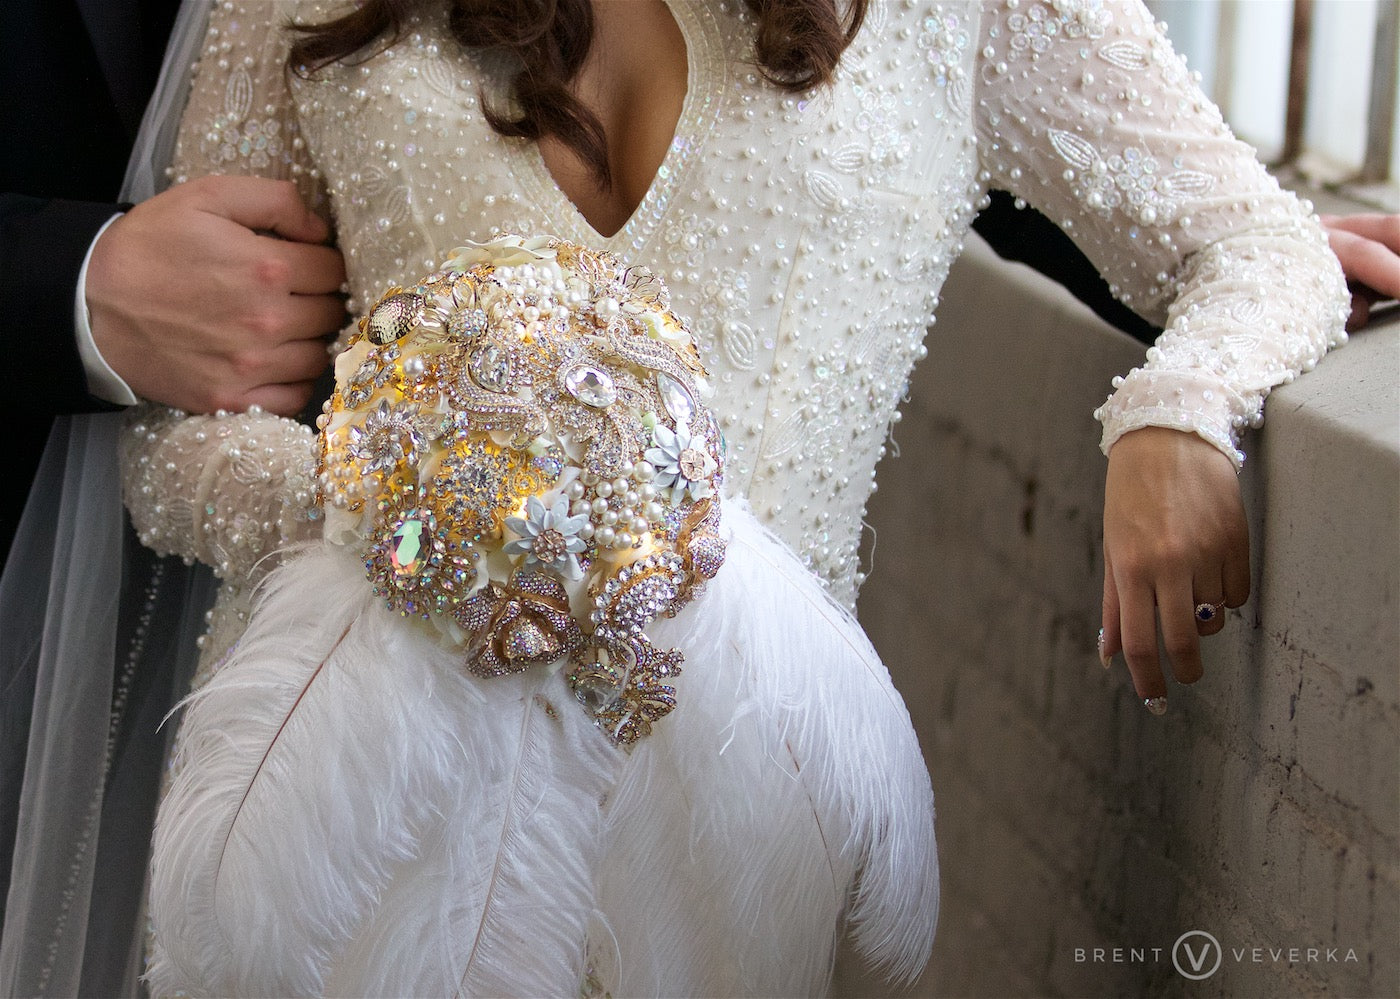 Bride's Vintage Brooch Bouquet | Glam Speakeasy Wedding | Brent Veverka Media